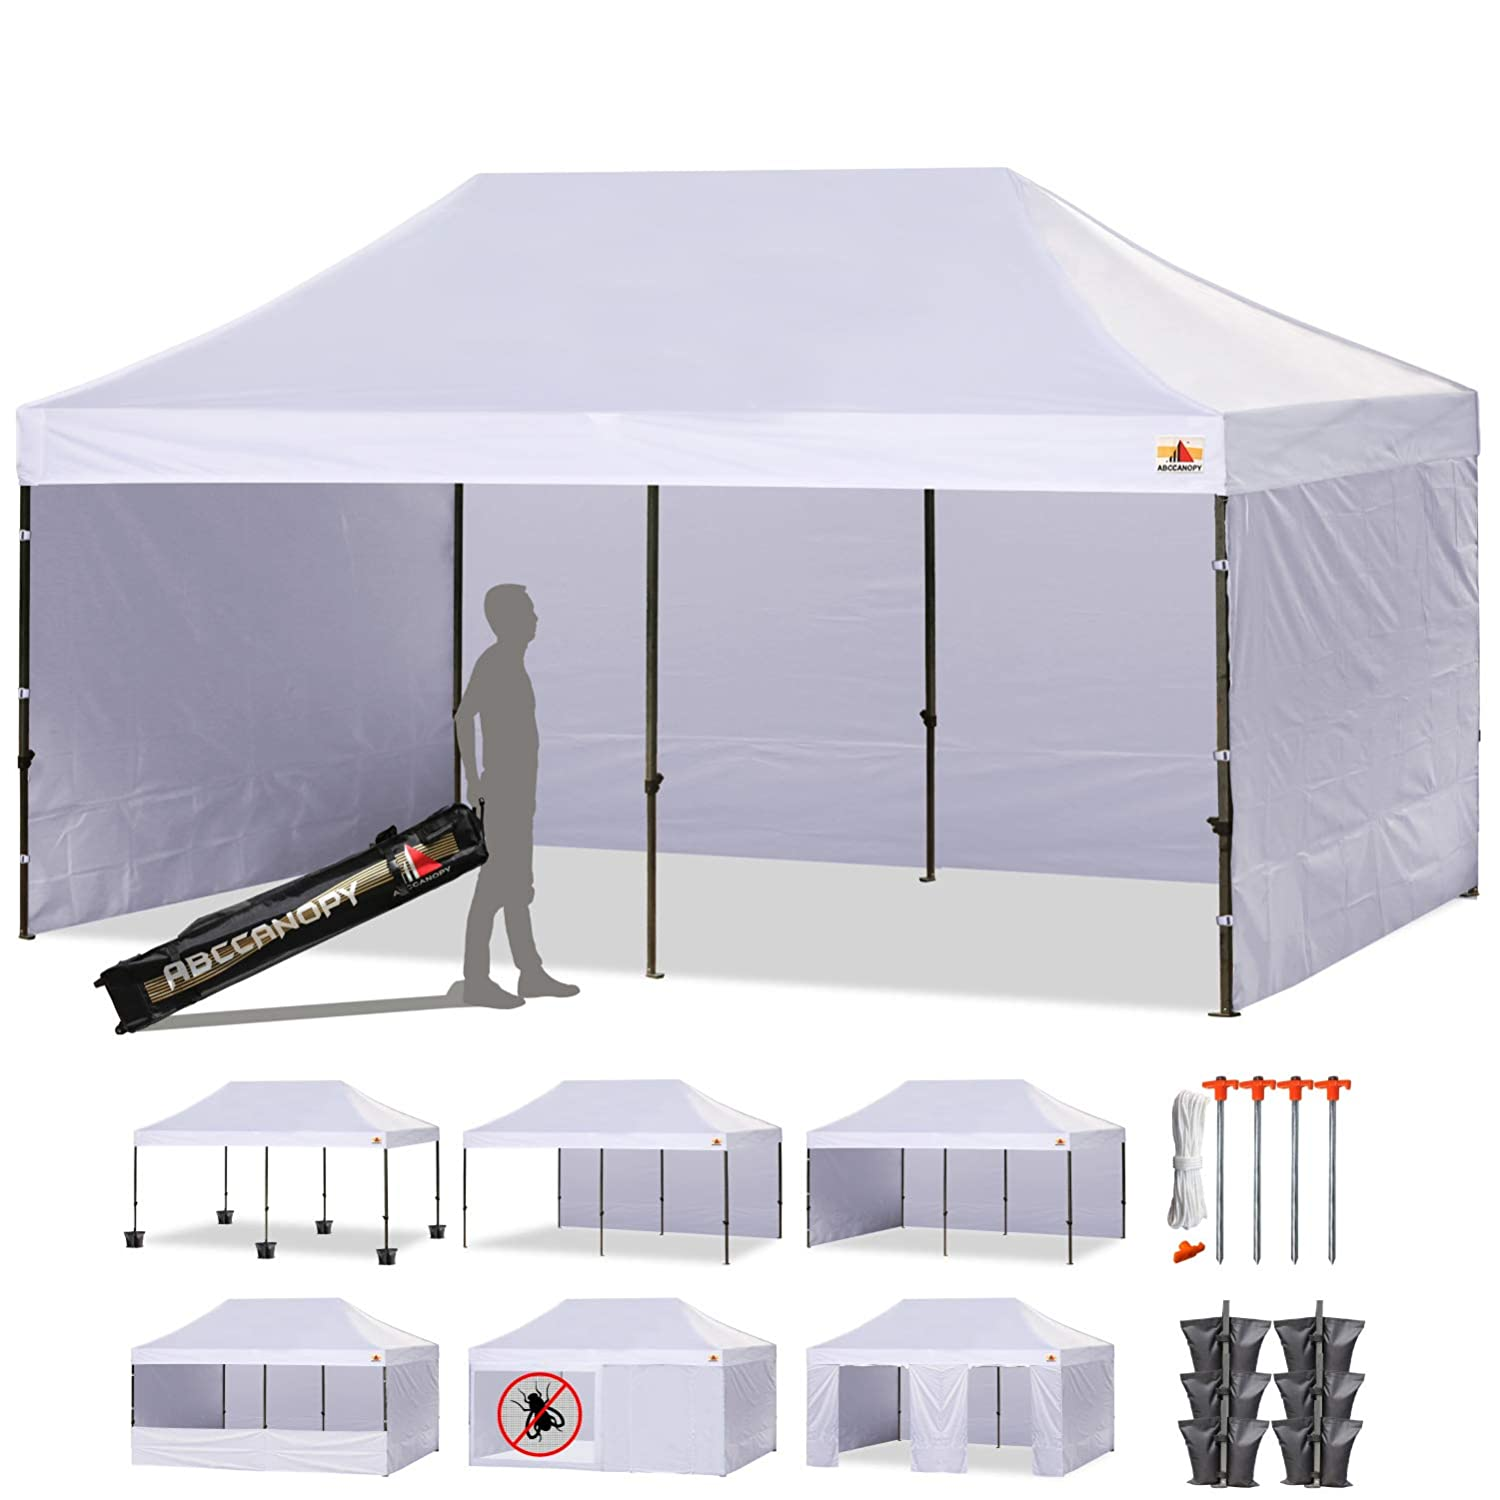 ABCCANOPY 23 Colors Deluxe 10×20 Pop up Canopy Outdoor Party Tent Commercial Gazebo with Enclosure Walls and Wheeled Carry Bag Bonus 6 Weight Bags,2 Half Walls and 1 Screen Wall White